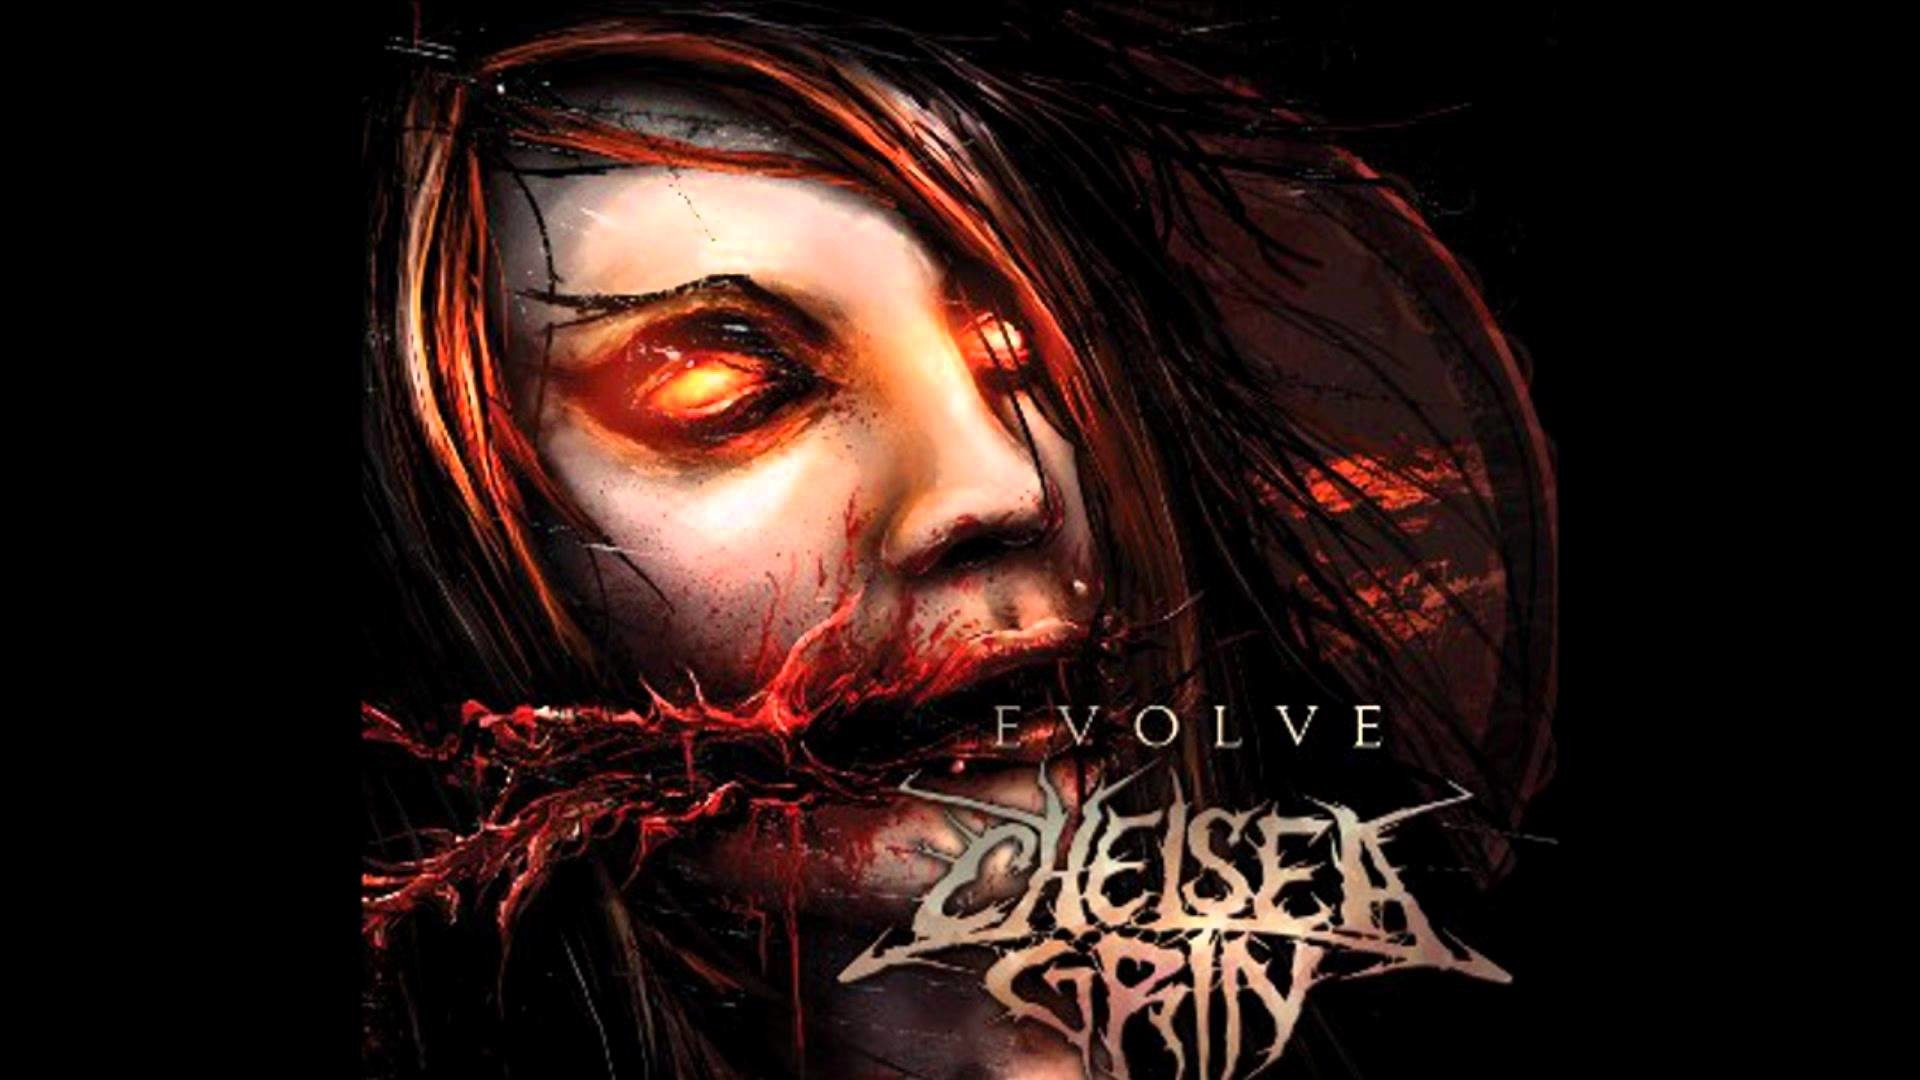 1920x1080 Chelsea Grin Wallpaper Page 1